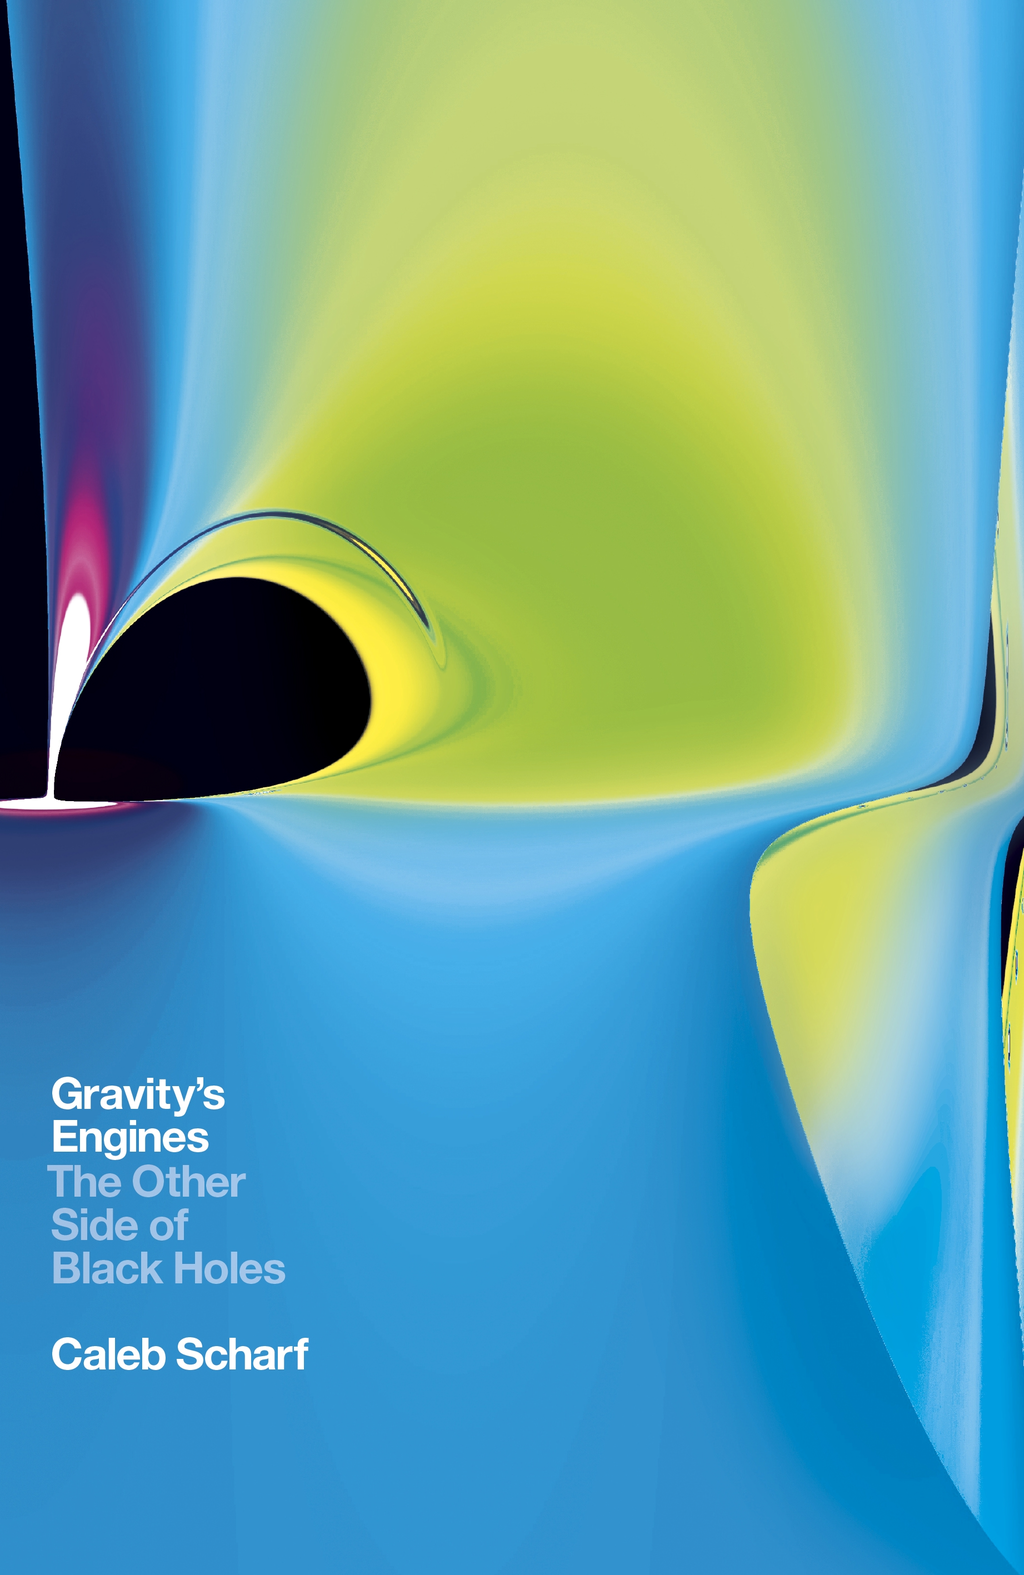 Gravity's Engines The Other Side of Black Holes